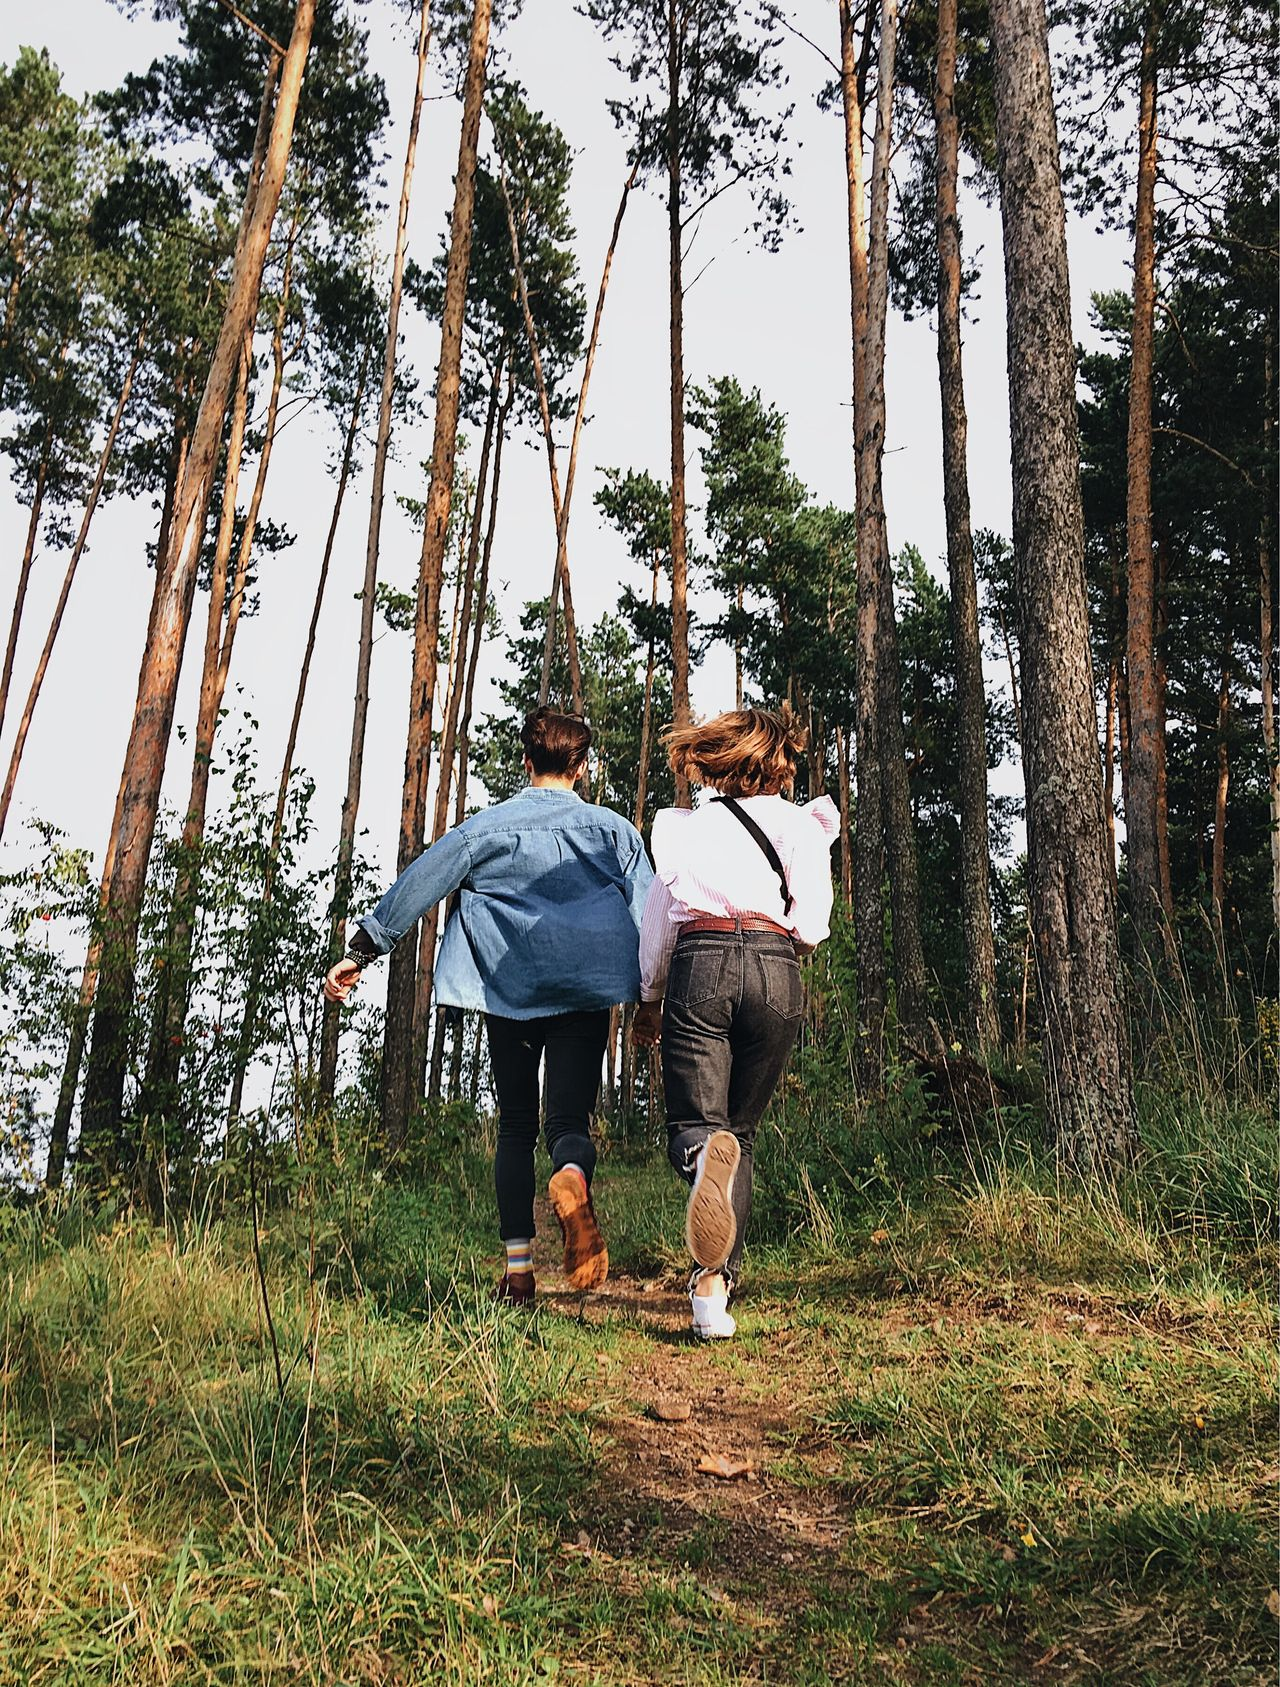 Be. Ready. For love of life and love for loved ones is the main thing and not only in 2018 😉 two people Tree heterosexual couple Tree trunk togetherness Nature forest full length Adult activity Adults Only outdoors Love enjoyment Couple day leisure activity Running bestoftheday Best EyeEm Shot